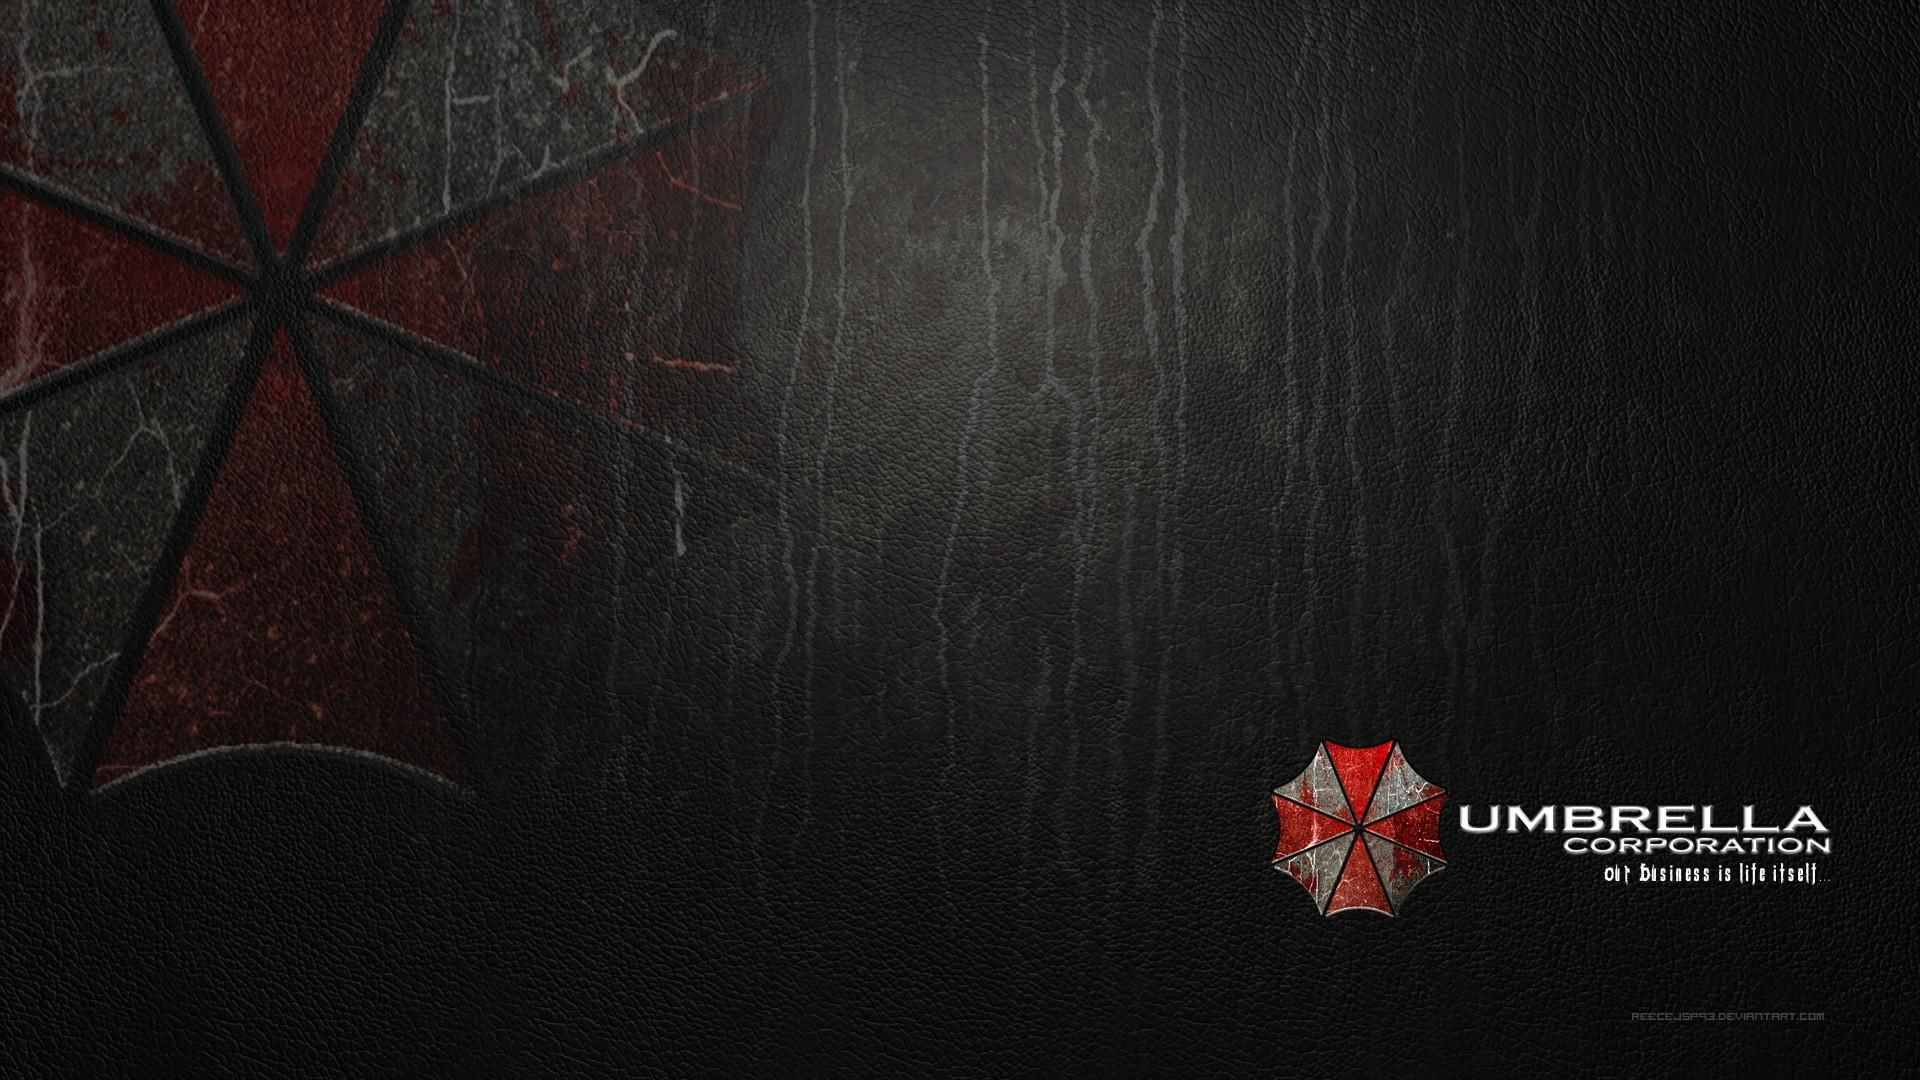 Resident Evil Umbrella Corp Wallpaper Wallpapersafari Resident Evil Umbrella Corporation Umbrella